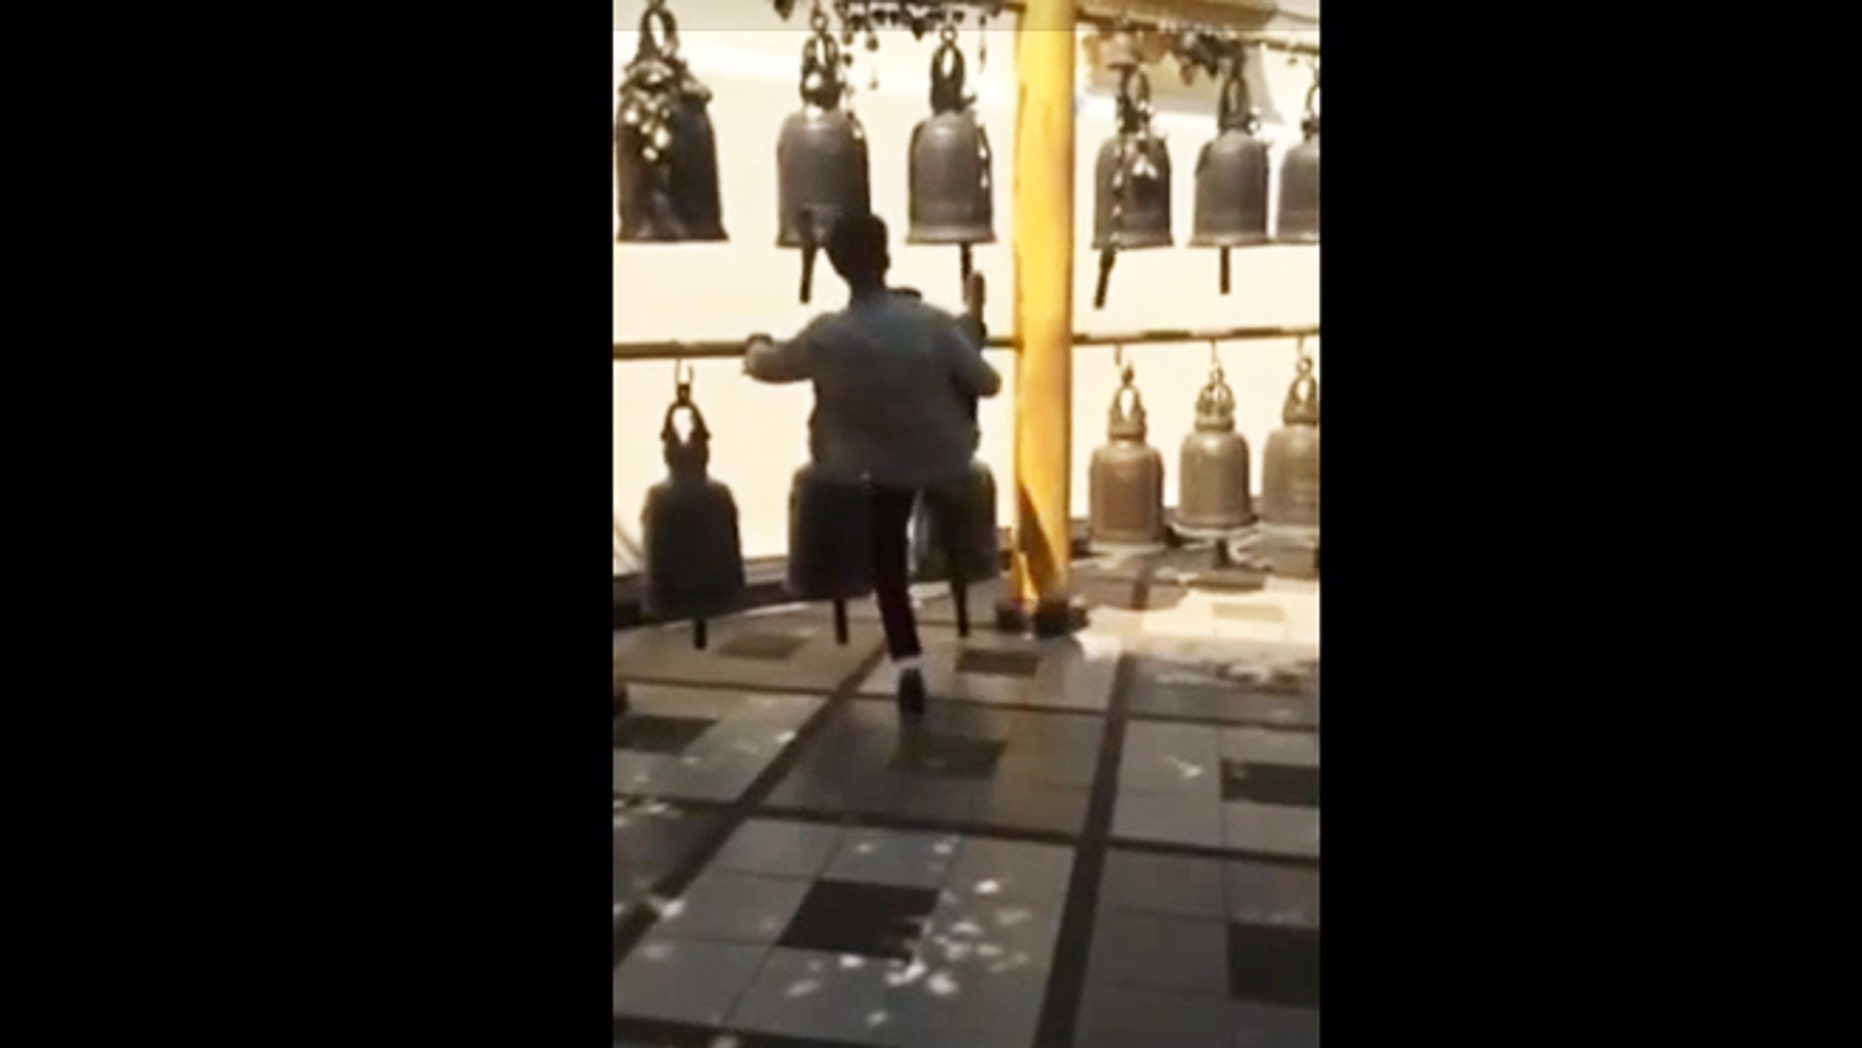 An unidentified tourist can be seen kicking a bell at the sacred Buddhist temple Wat Phra That Doi Suthep.